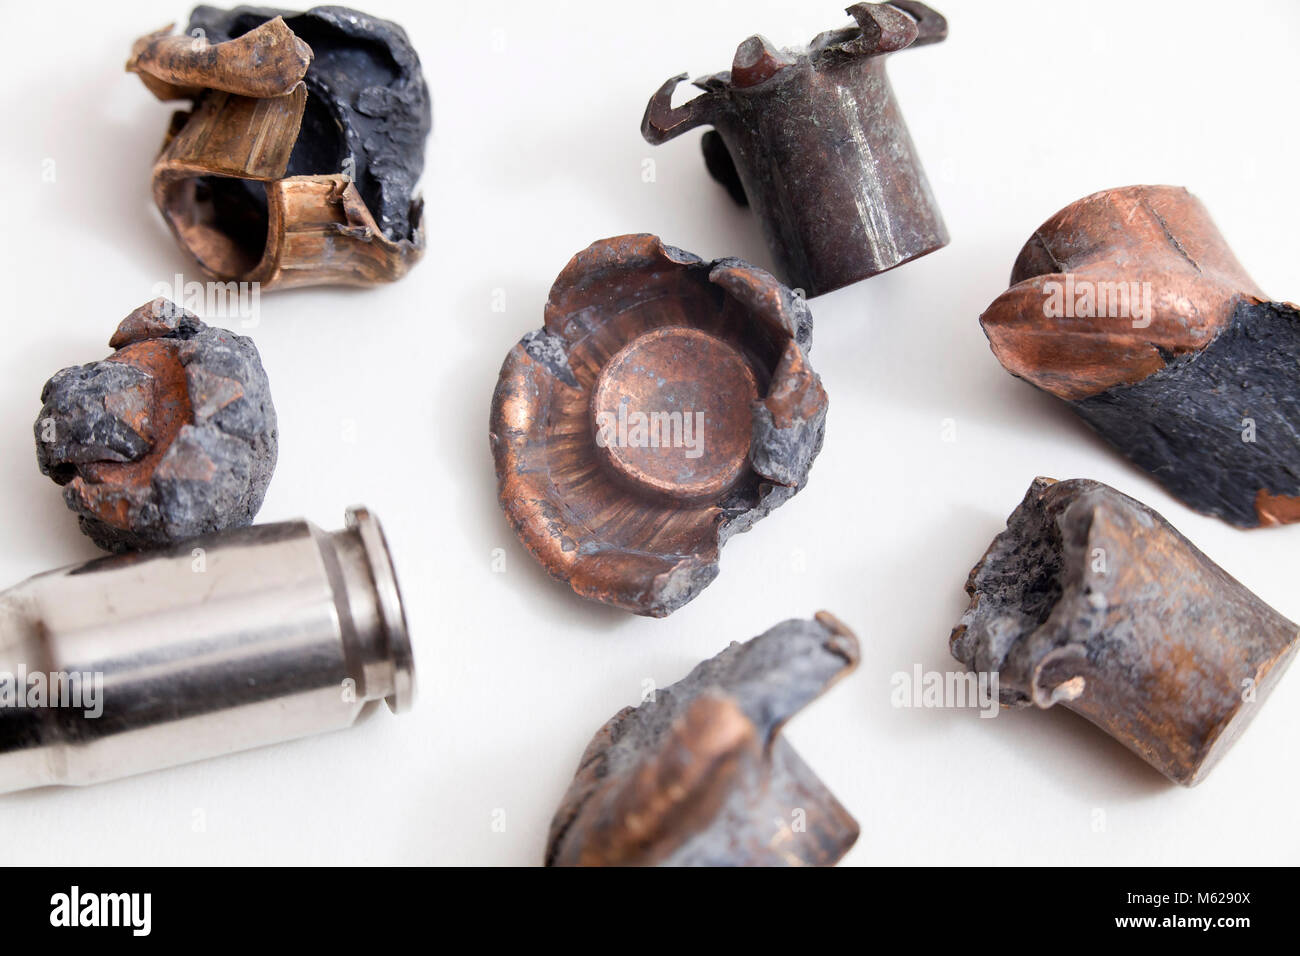 Various types of recovered spent bullets (projectiles) showing expansion (mushrooming) - USA - Stock Image